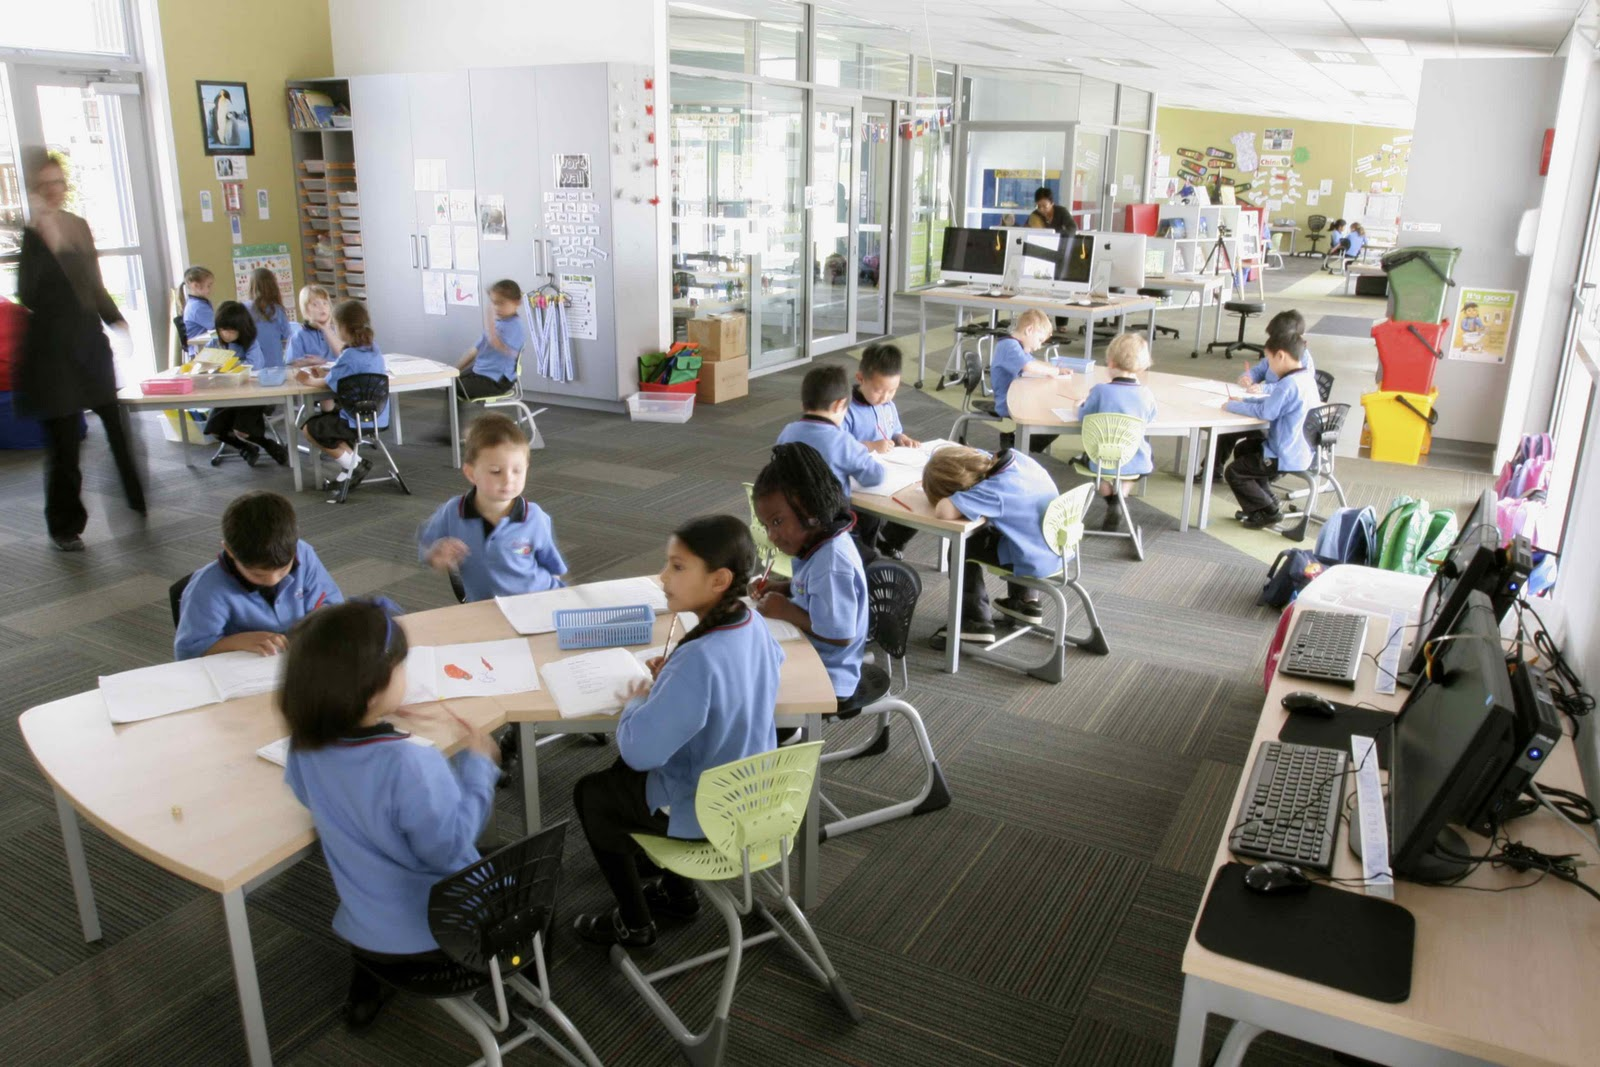 Collaborative Teaching Of Learning : Open learning spaces collaborative teaching what might